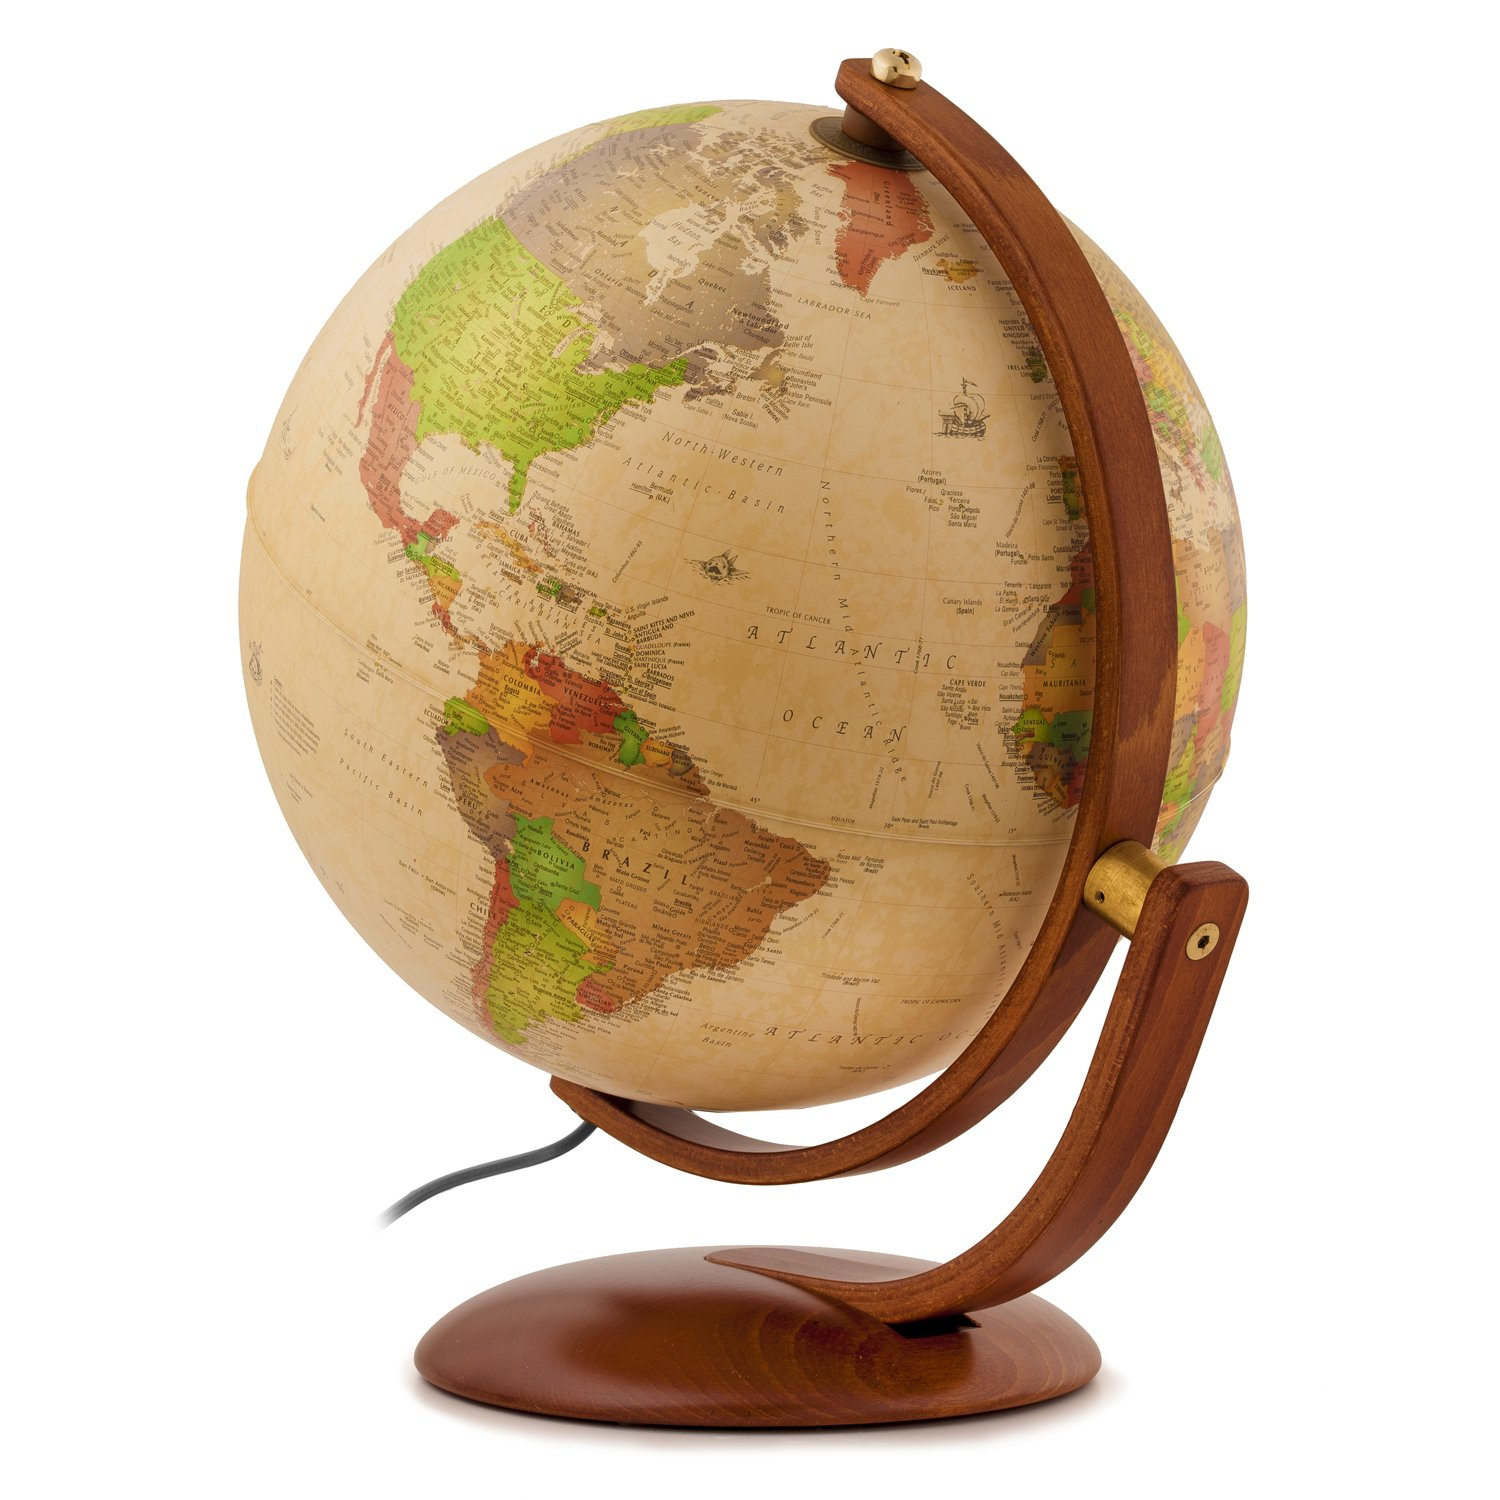 Classic Antique Waypoint Geographic Andorra 12 Political Landmass /& Classic Antique Oceans Illuminated UP-TO-DATE Desktop Globe with Multi-Directional Wood Meridian /& Base Perfect for Home /& Office